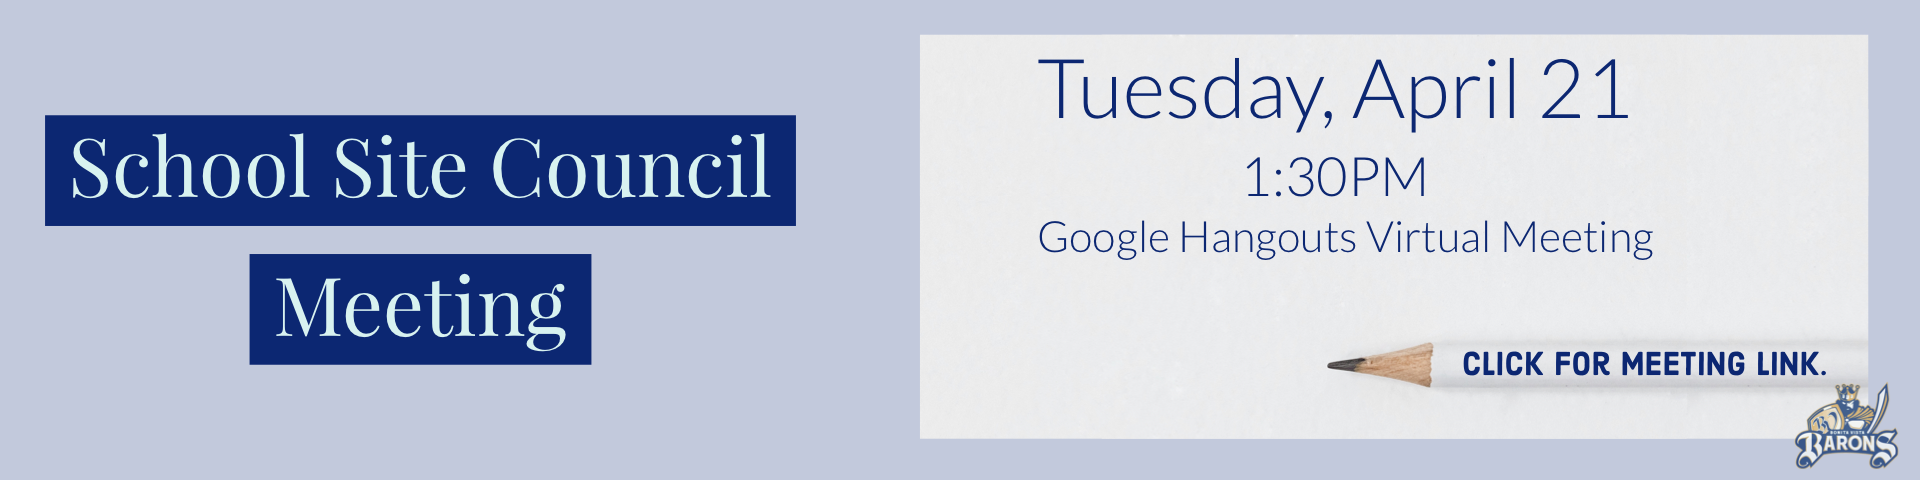 School Site Council Virtual Meeting Via Google Hangouts On Tuesday April 21 at 1:30pm.